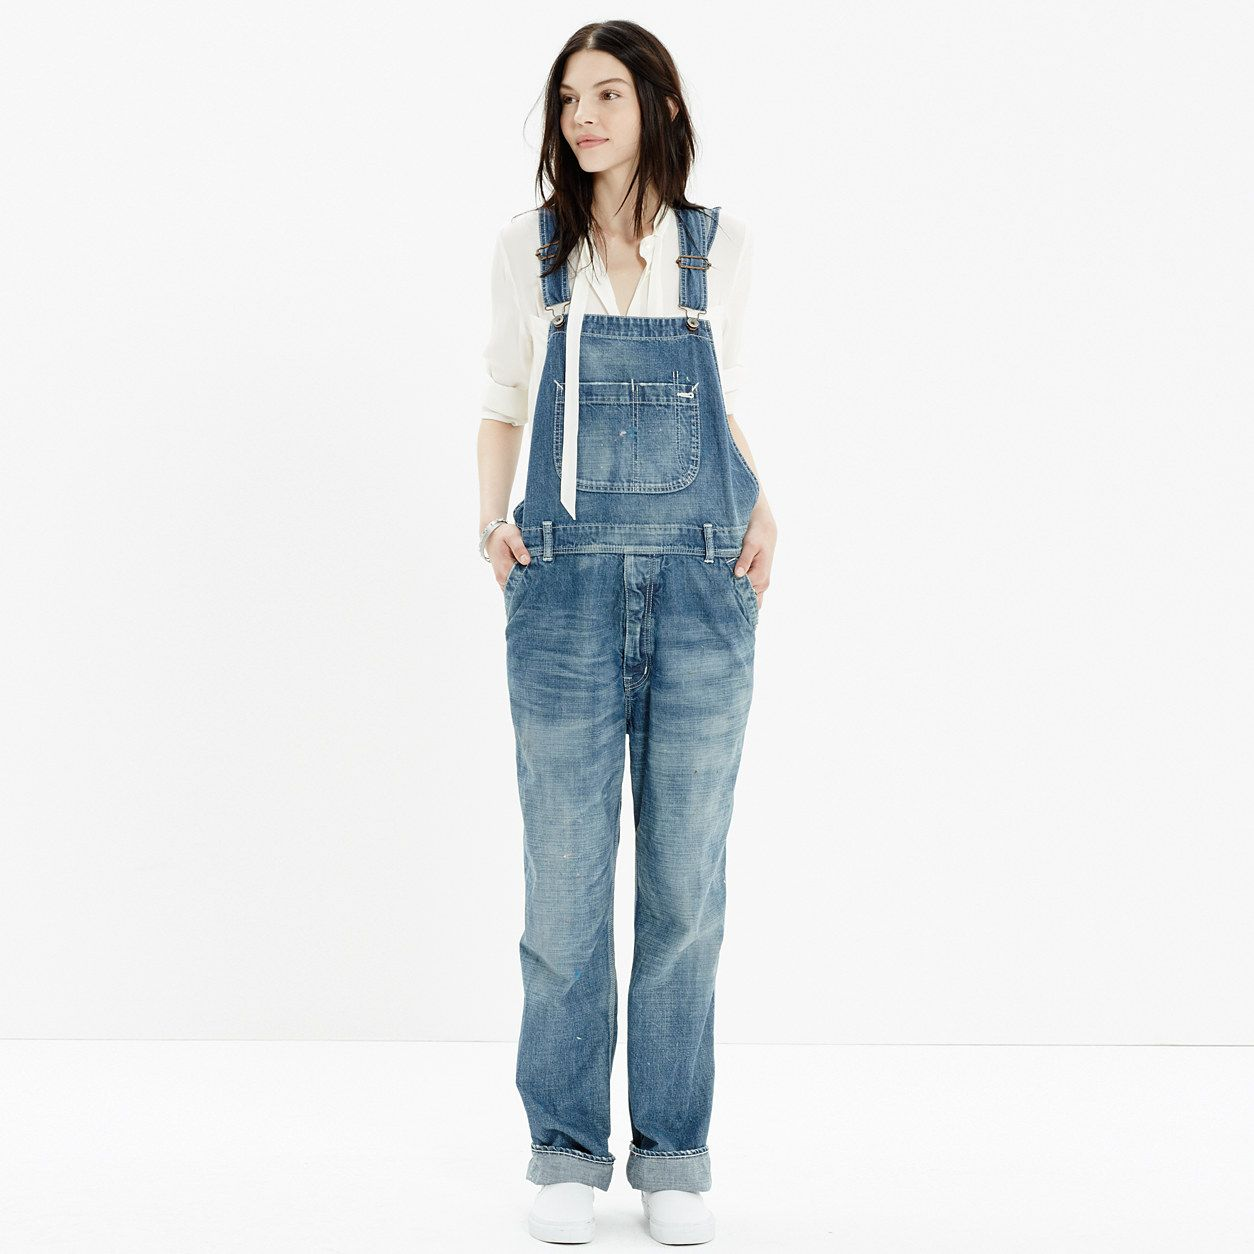 594424d2f693 madewell chimala overalls. why are these so far out of my price range. why.